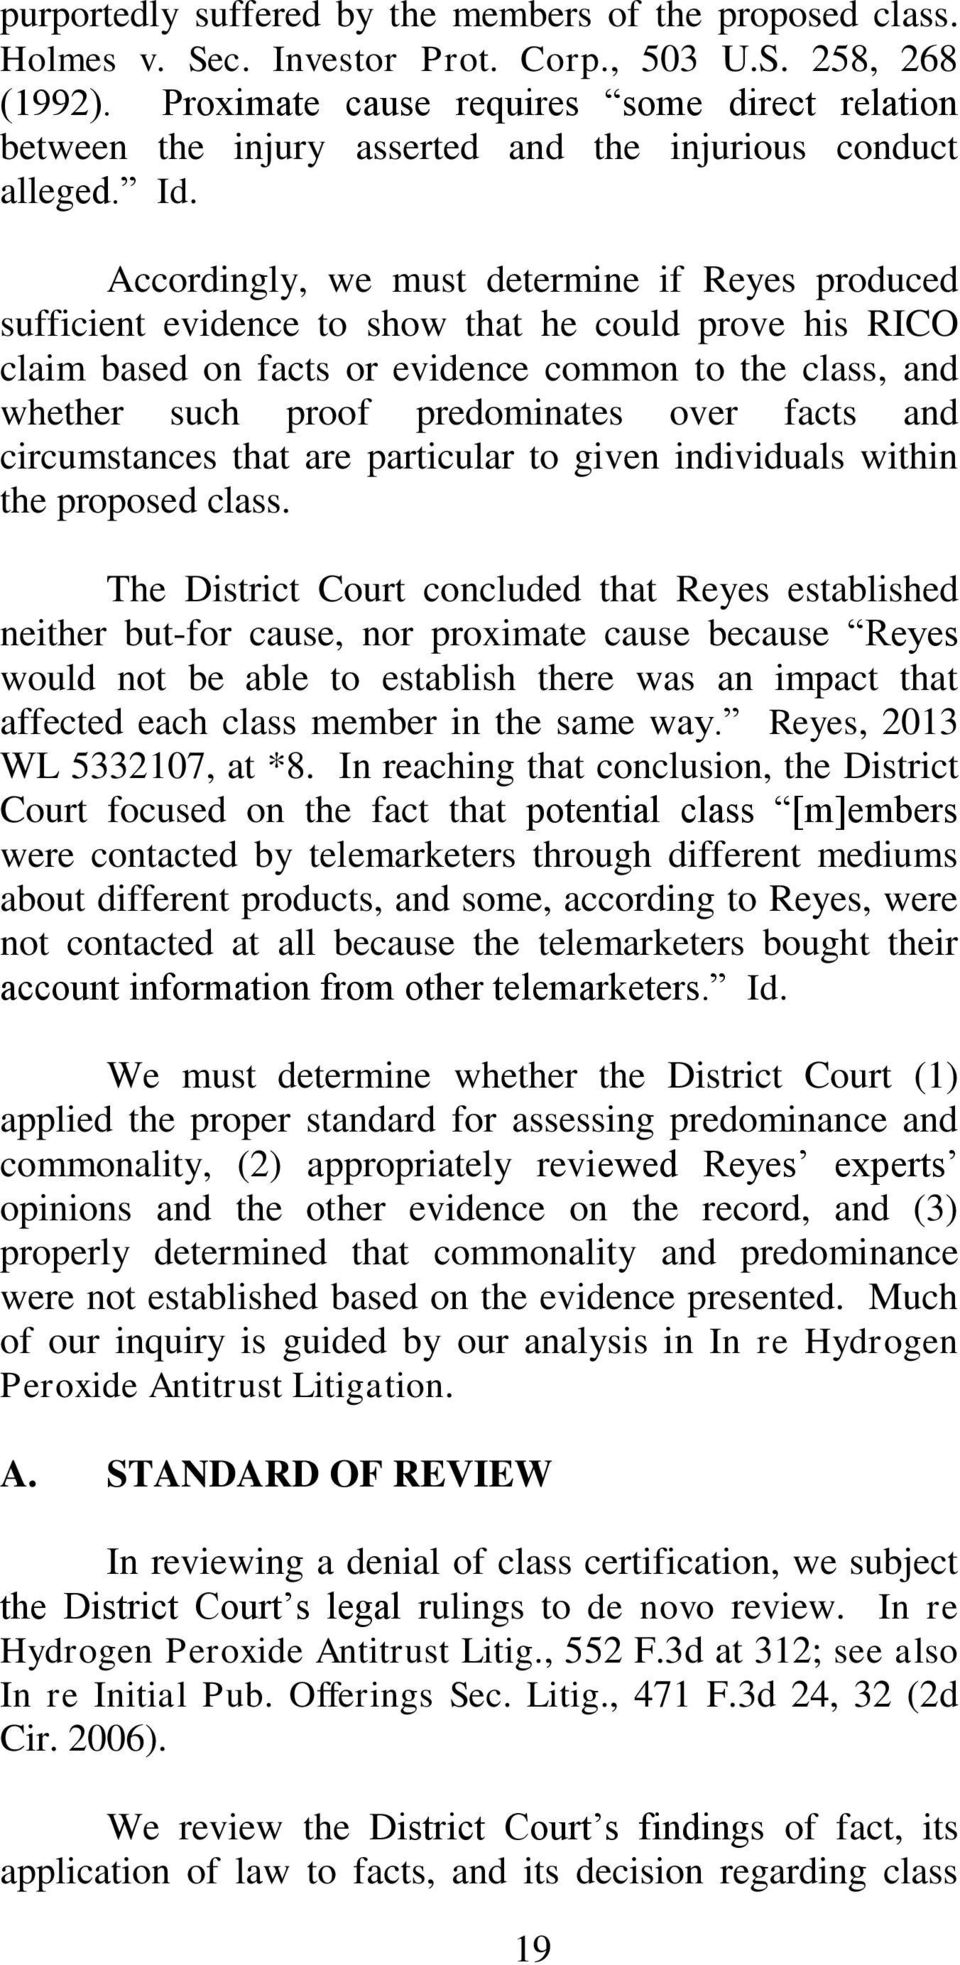 Accordingly, we must determine if Reyes produced sufficient evidence to show that he could prove his RICO claim based on facts or evidence common to the class, and whether such proof predominates